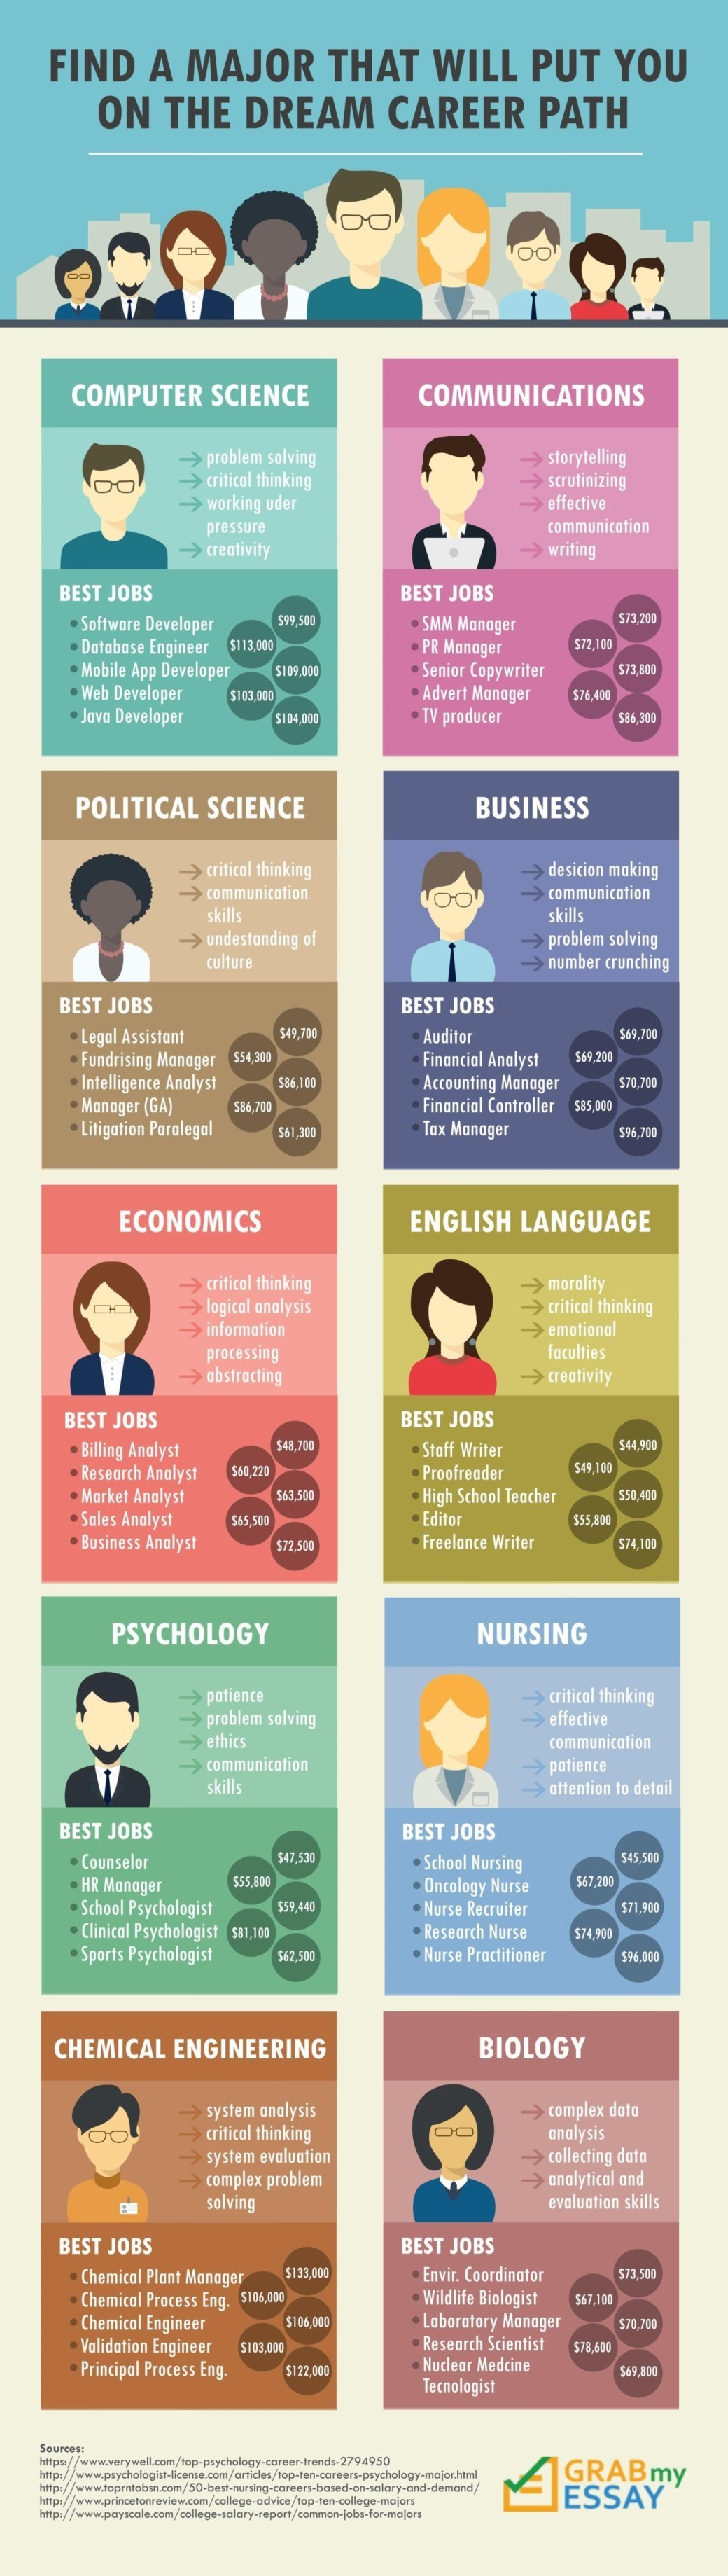 Find A Major That Will Put You On The Dream Career Path Infographic